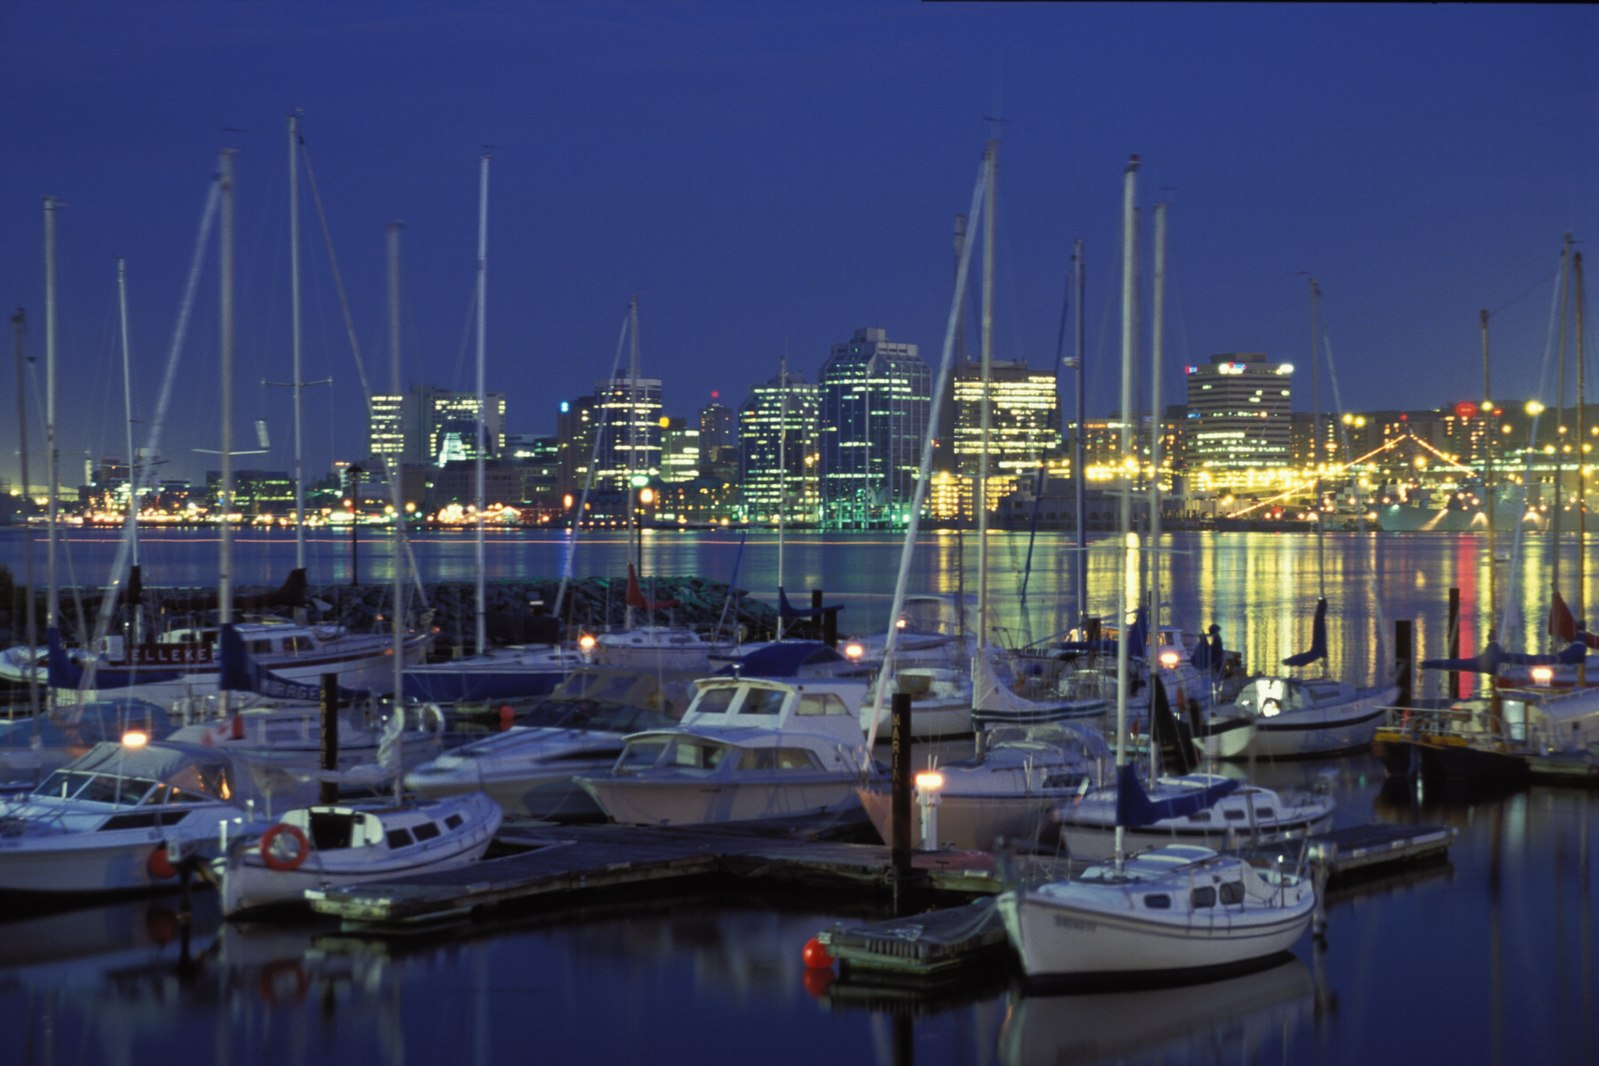 An evening view of the Halifax waterfront. Photo via Wikimedia Commons.